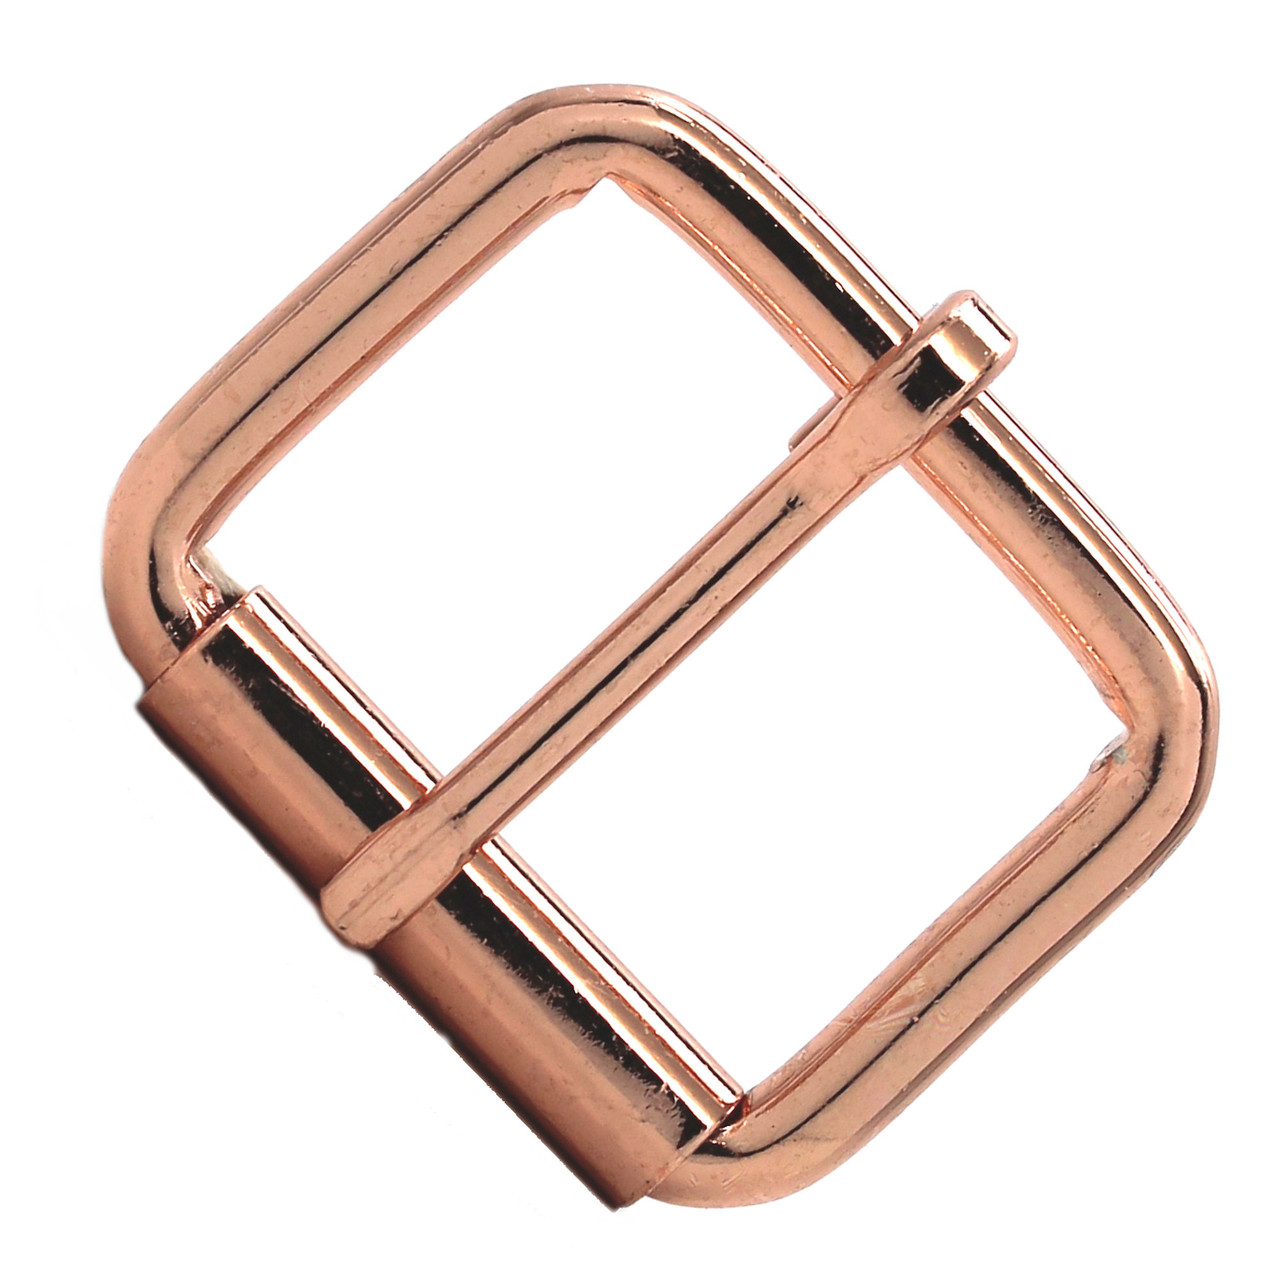 Roller buckle 1.5 Inch copper front